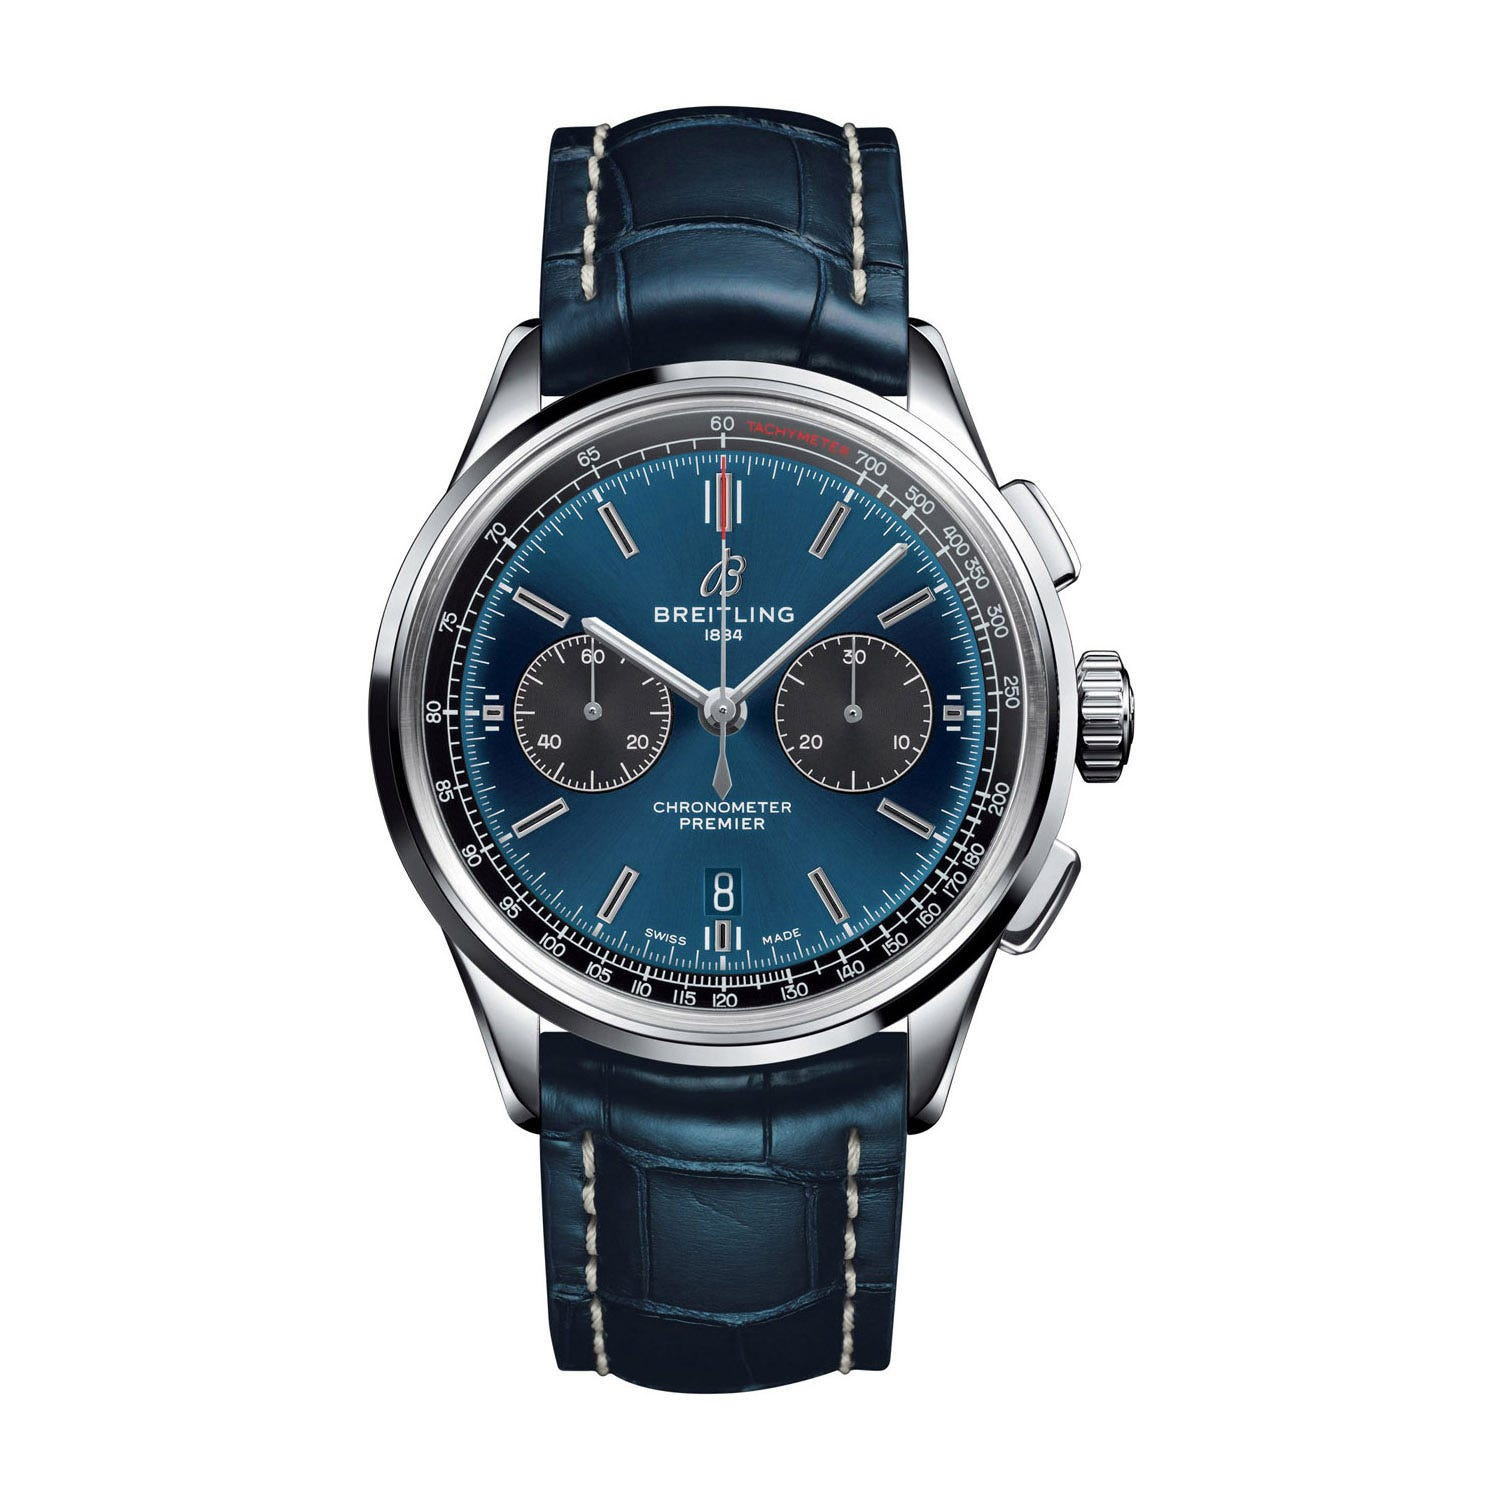 Breitling Premier B01 Blue Leather 42mm Men's Watch